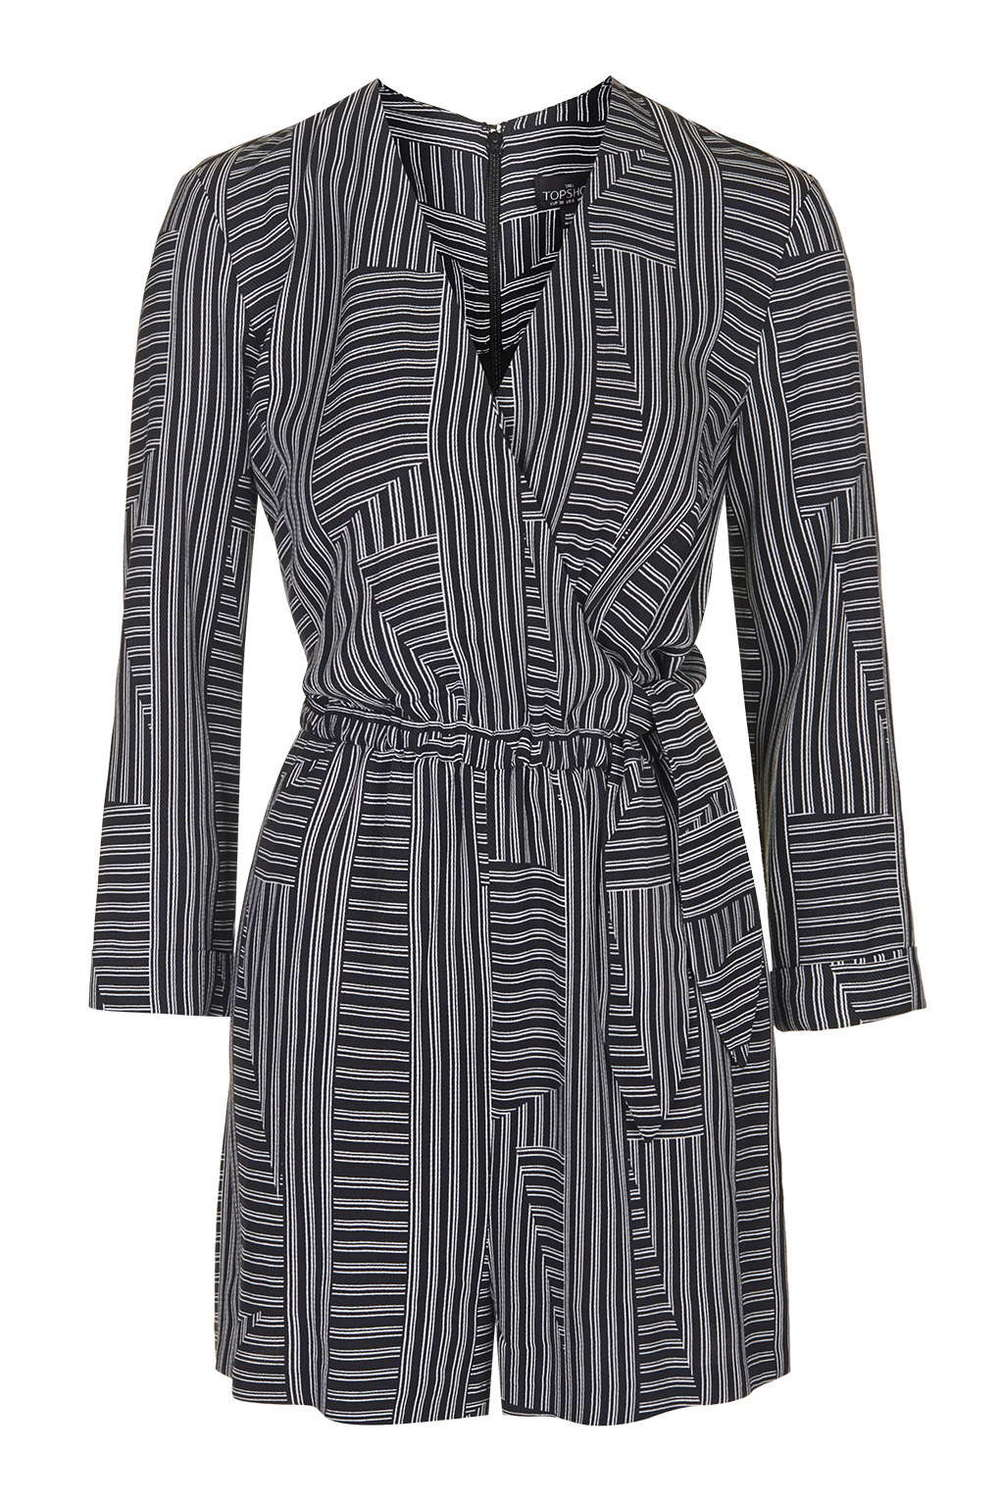 TALL Stripe Wrap Playsuit. Topshop. $95.